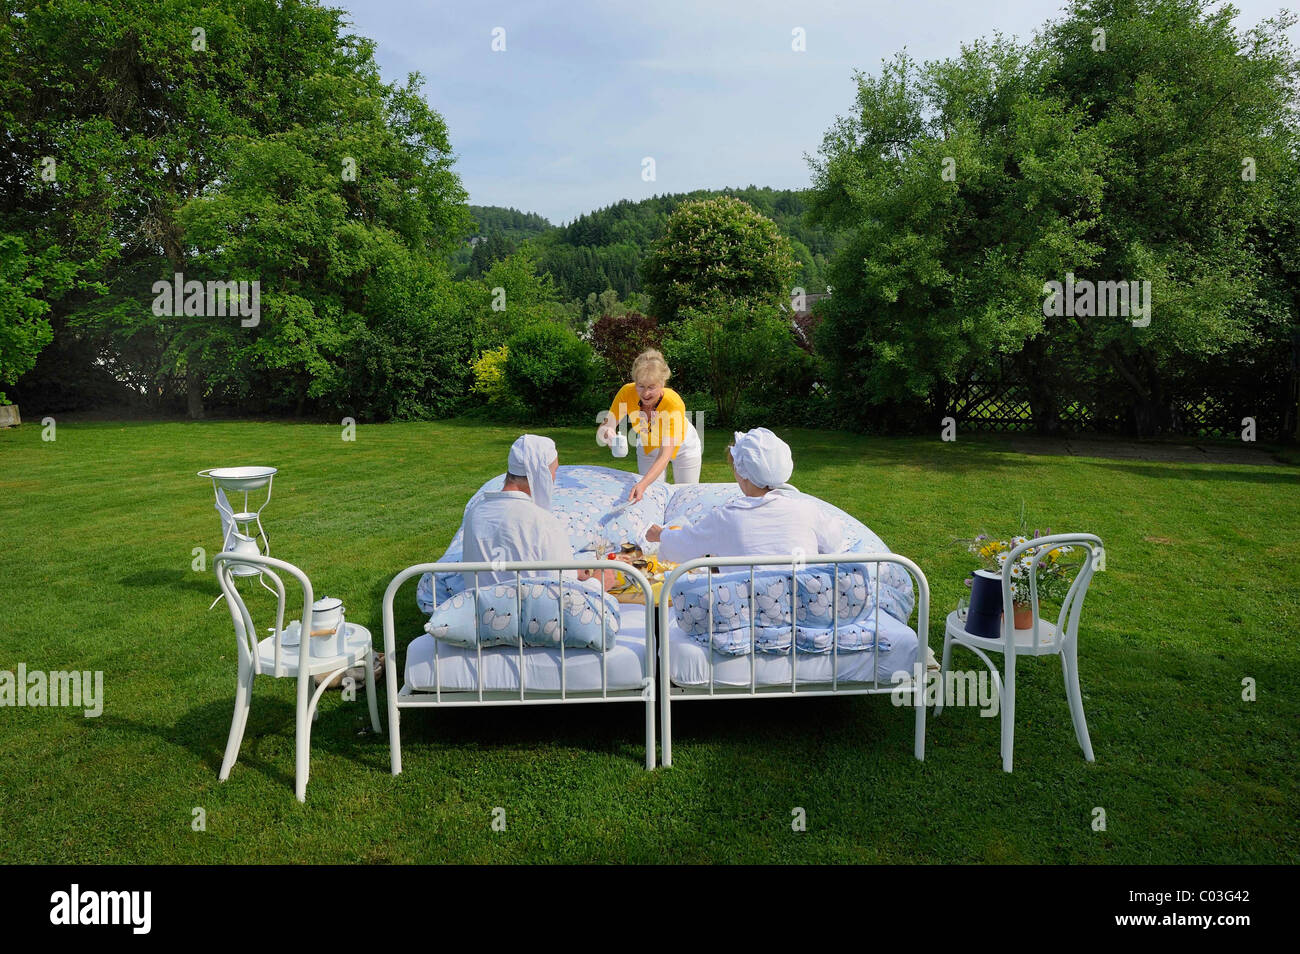 boarders-with-nightcaps-having-breakfast-in-bed-in-a-garden-crazy-C03G42.jpg